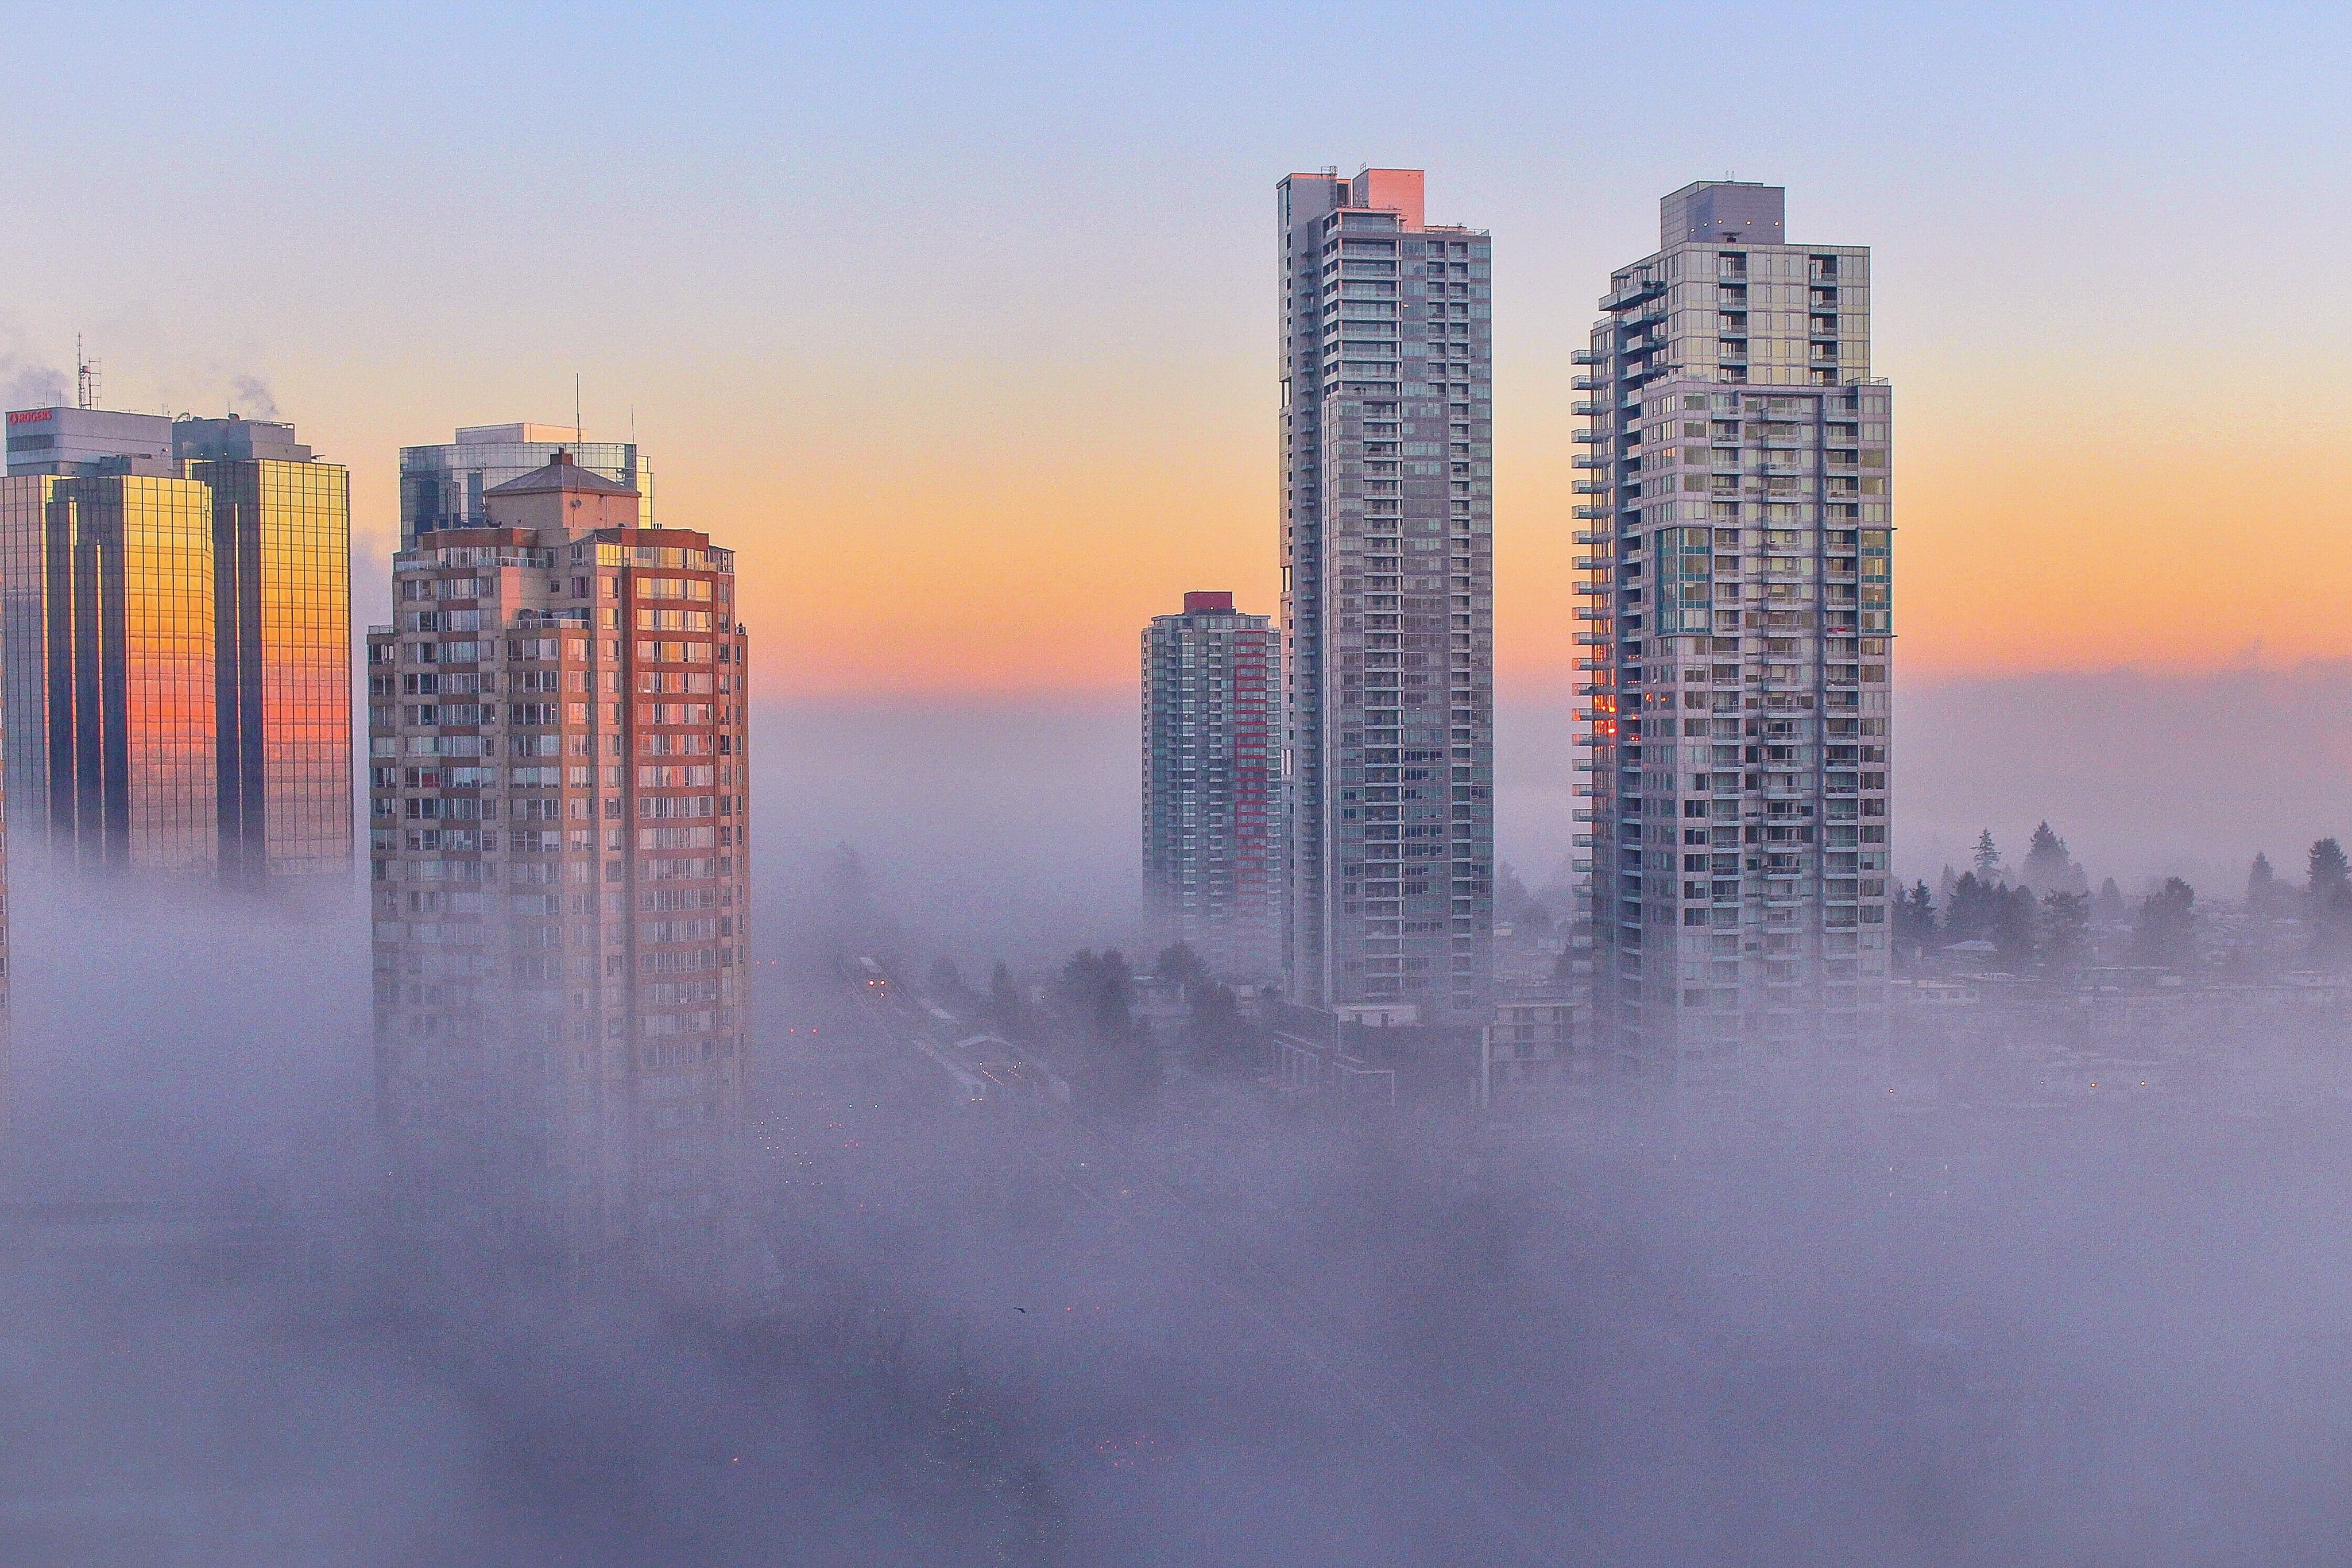 Buildings poking out of fog and sunset in Burnaby